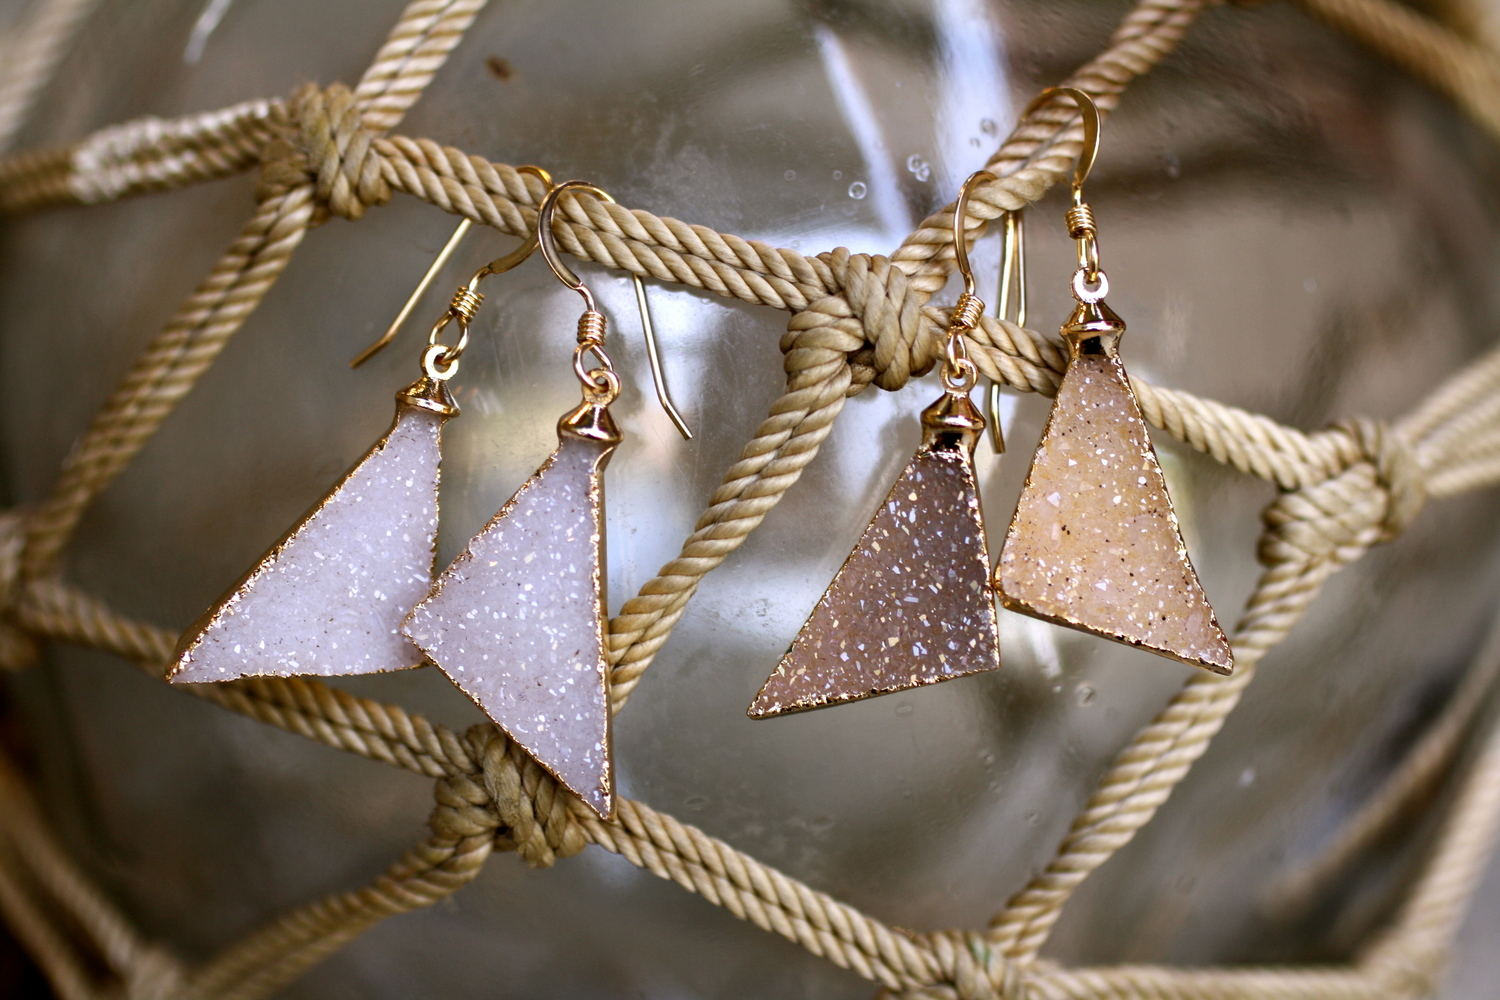 Brittany+Bitch+Triangle+White+Tan+Druzy+Gold+Eletroplated+Earrings_03.jpg